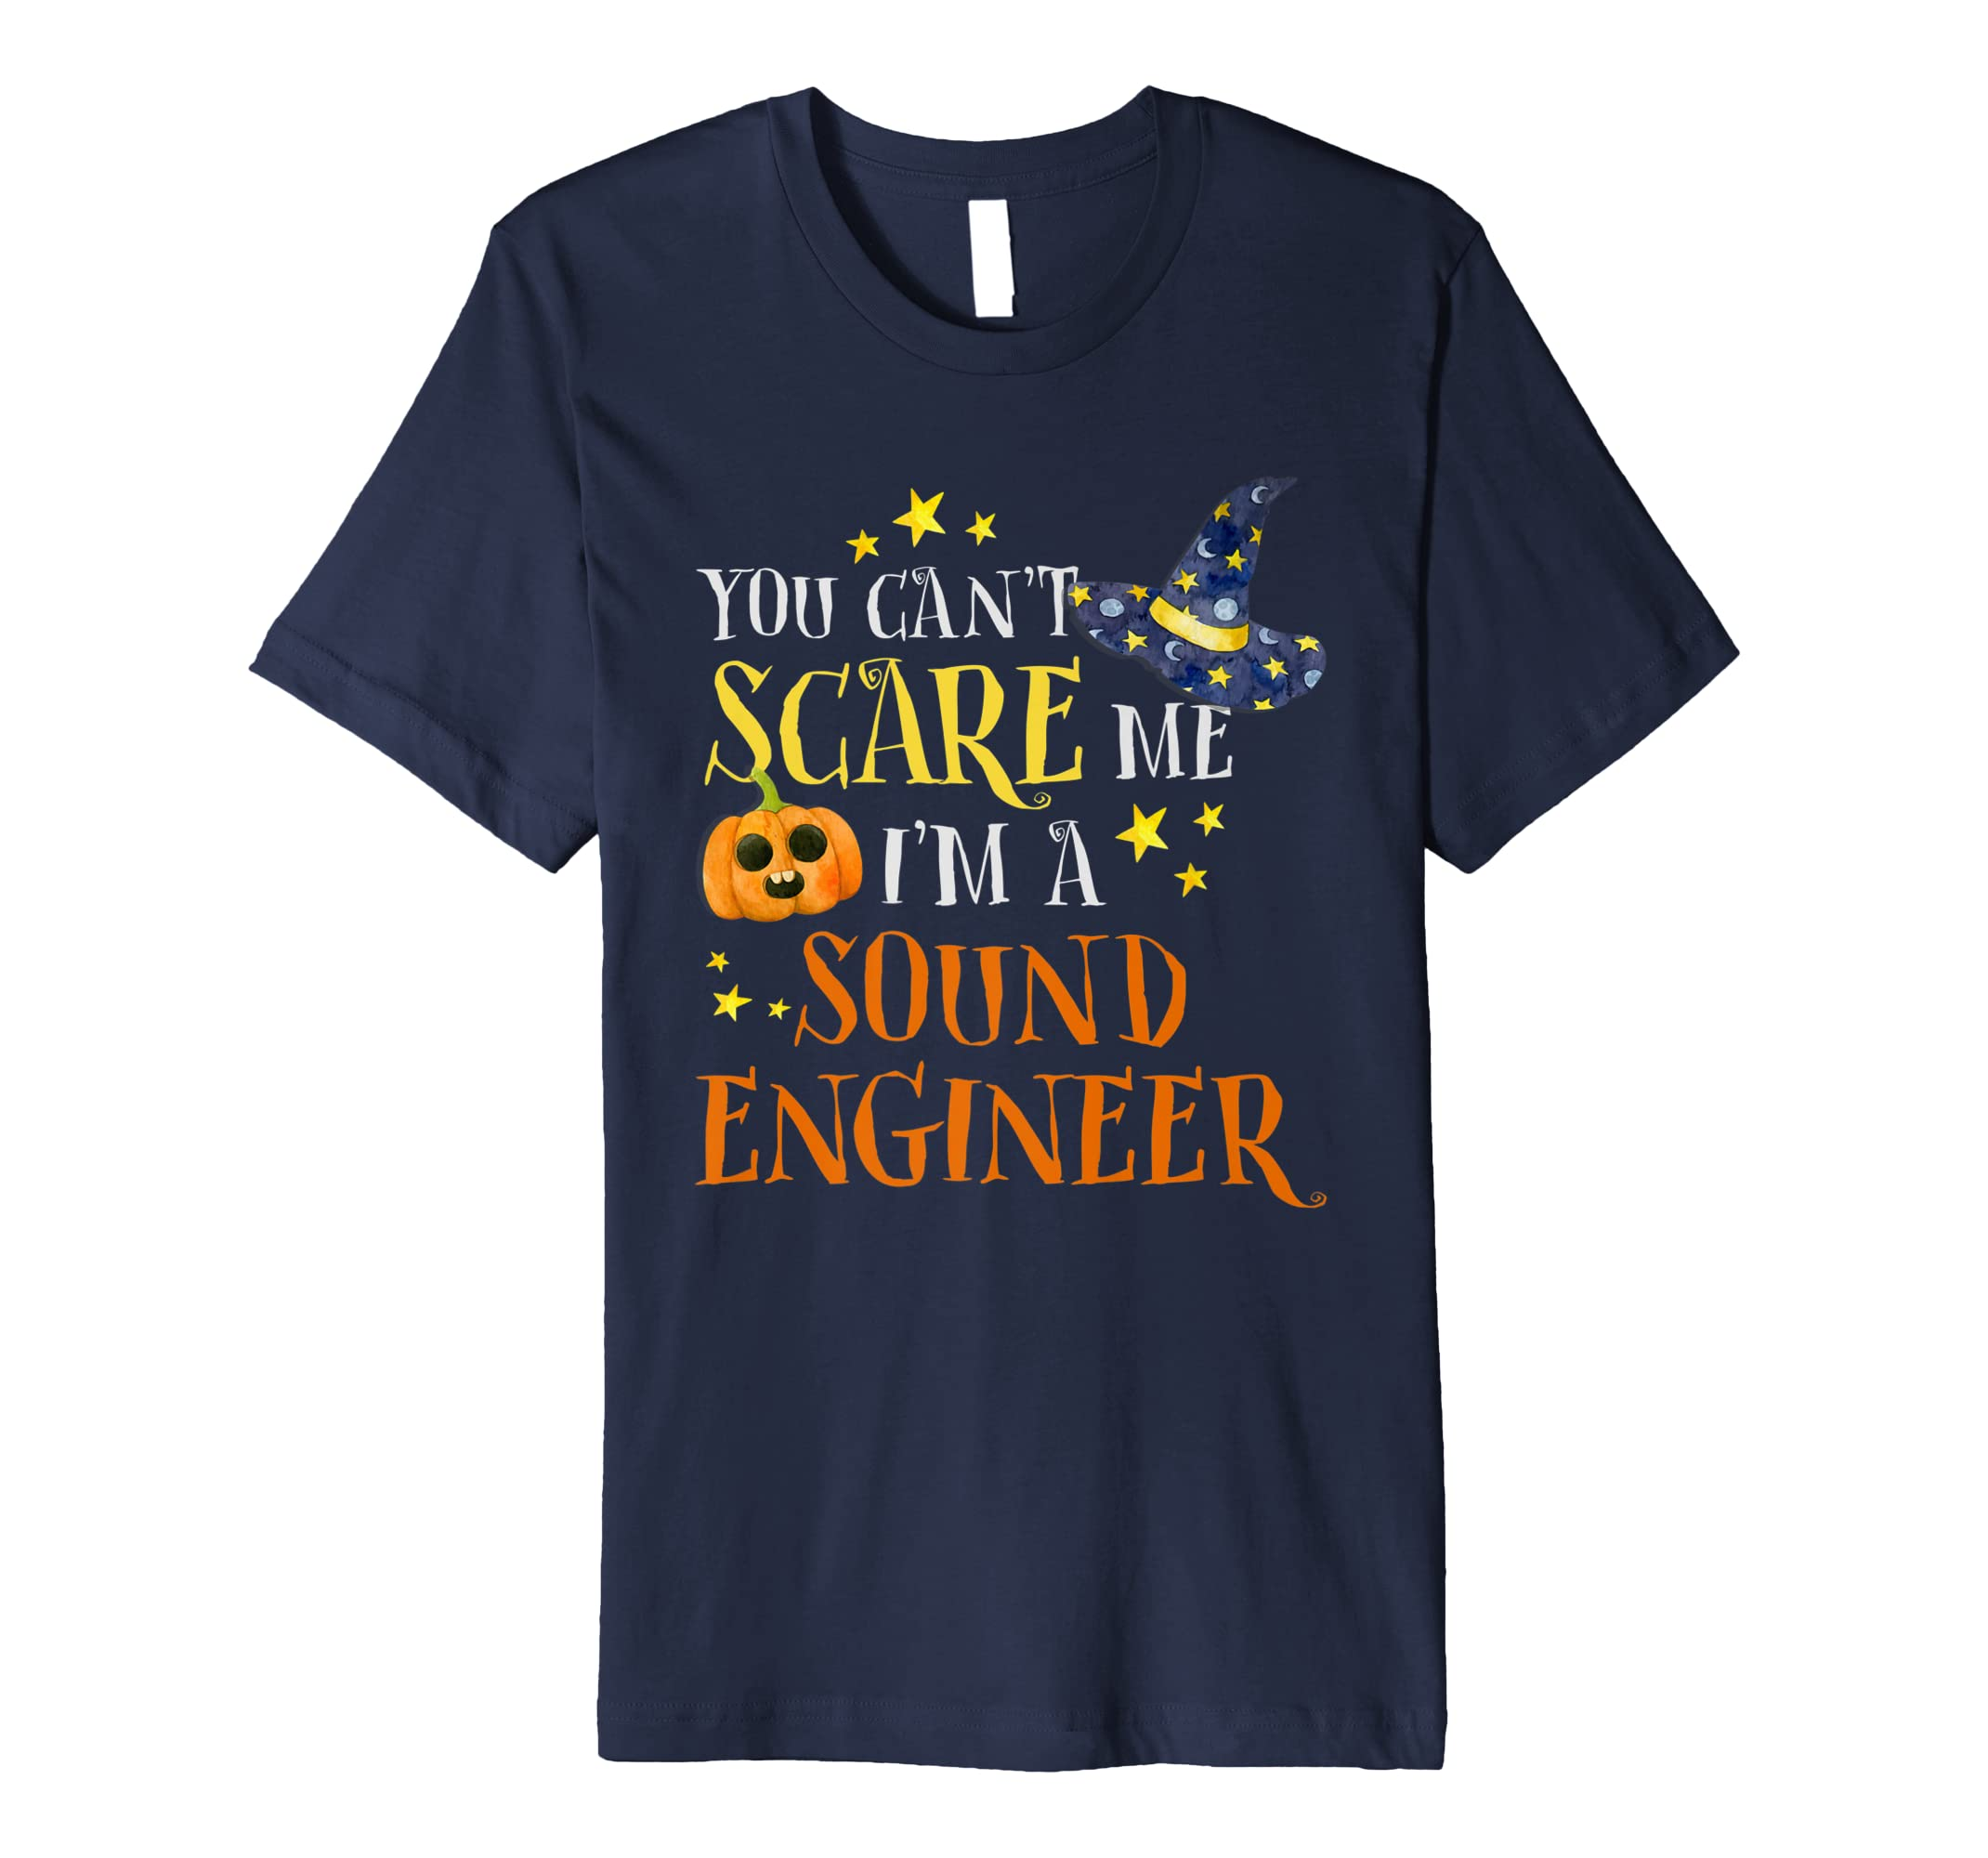 You Can't Scare Me Sound Engineer Halloween Costume Shirt-SFL